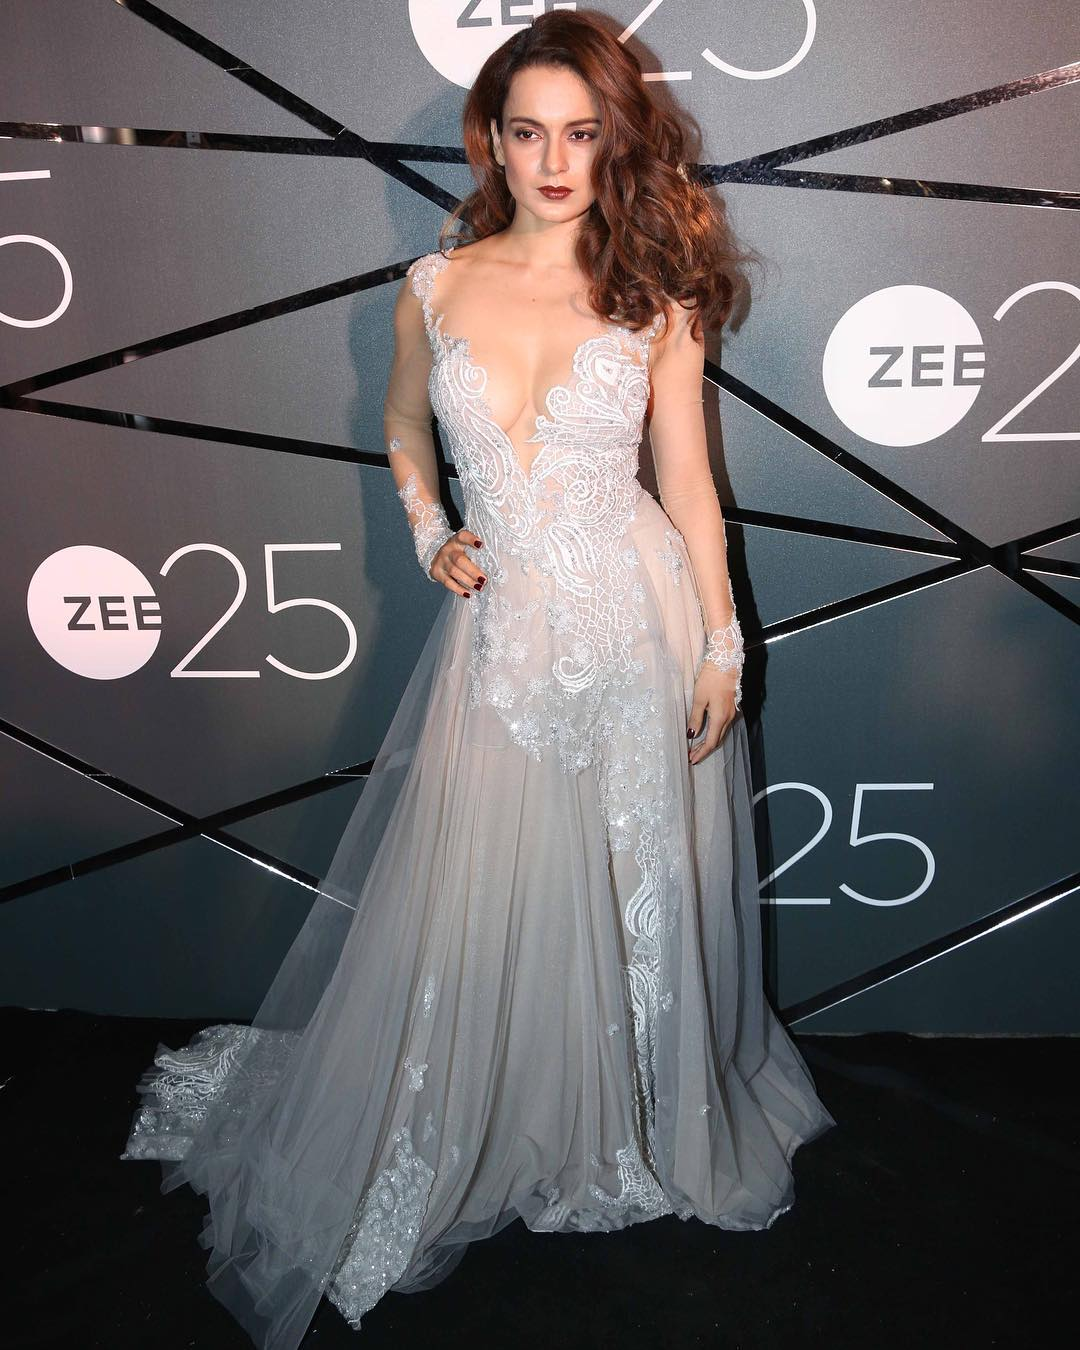 Kangana Ranaut Looked Absolutely Stunning At Zee Cine's 25th Aniversary Celebration